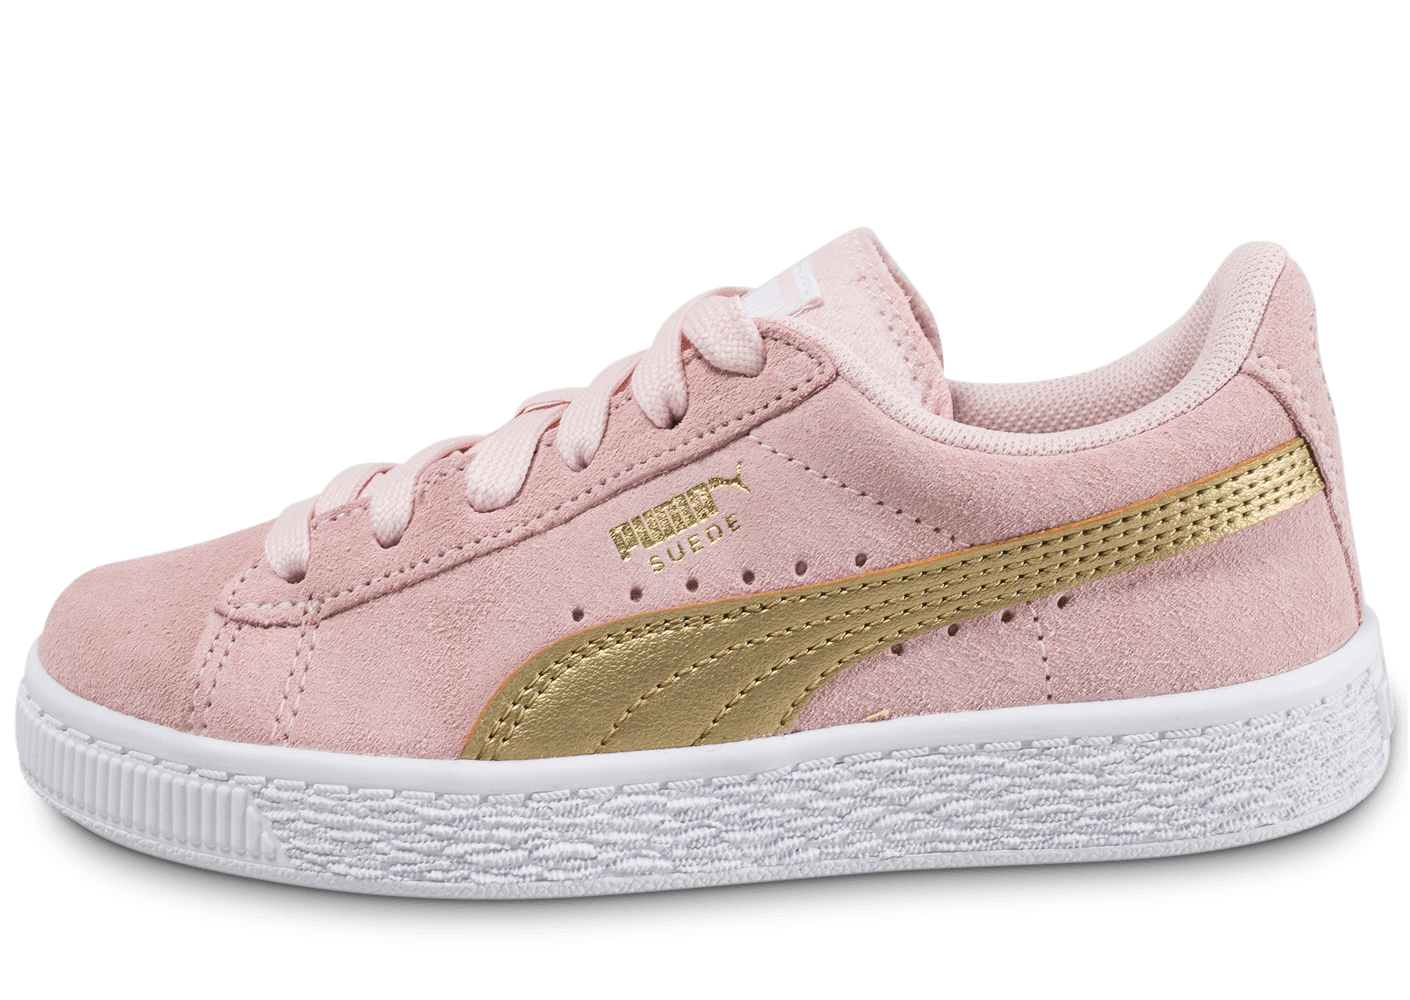 Basketstennis Enfant Puma Suede Rose 8fgnm99fig Faultless xOqtfqw